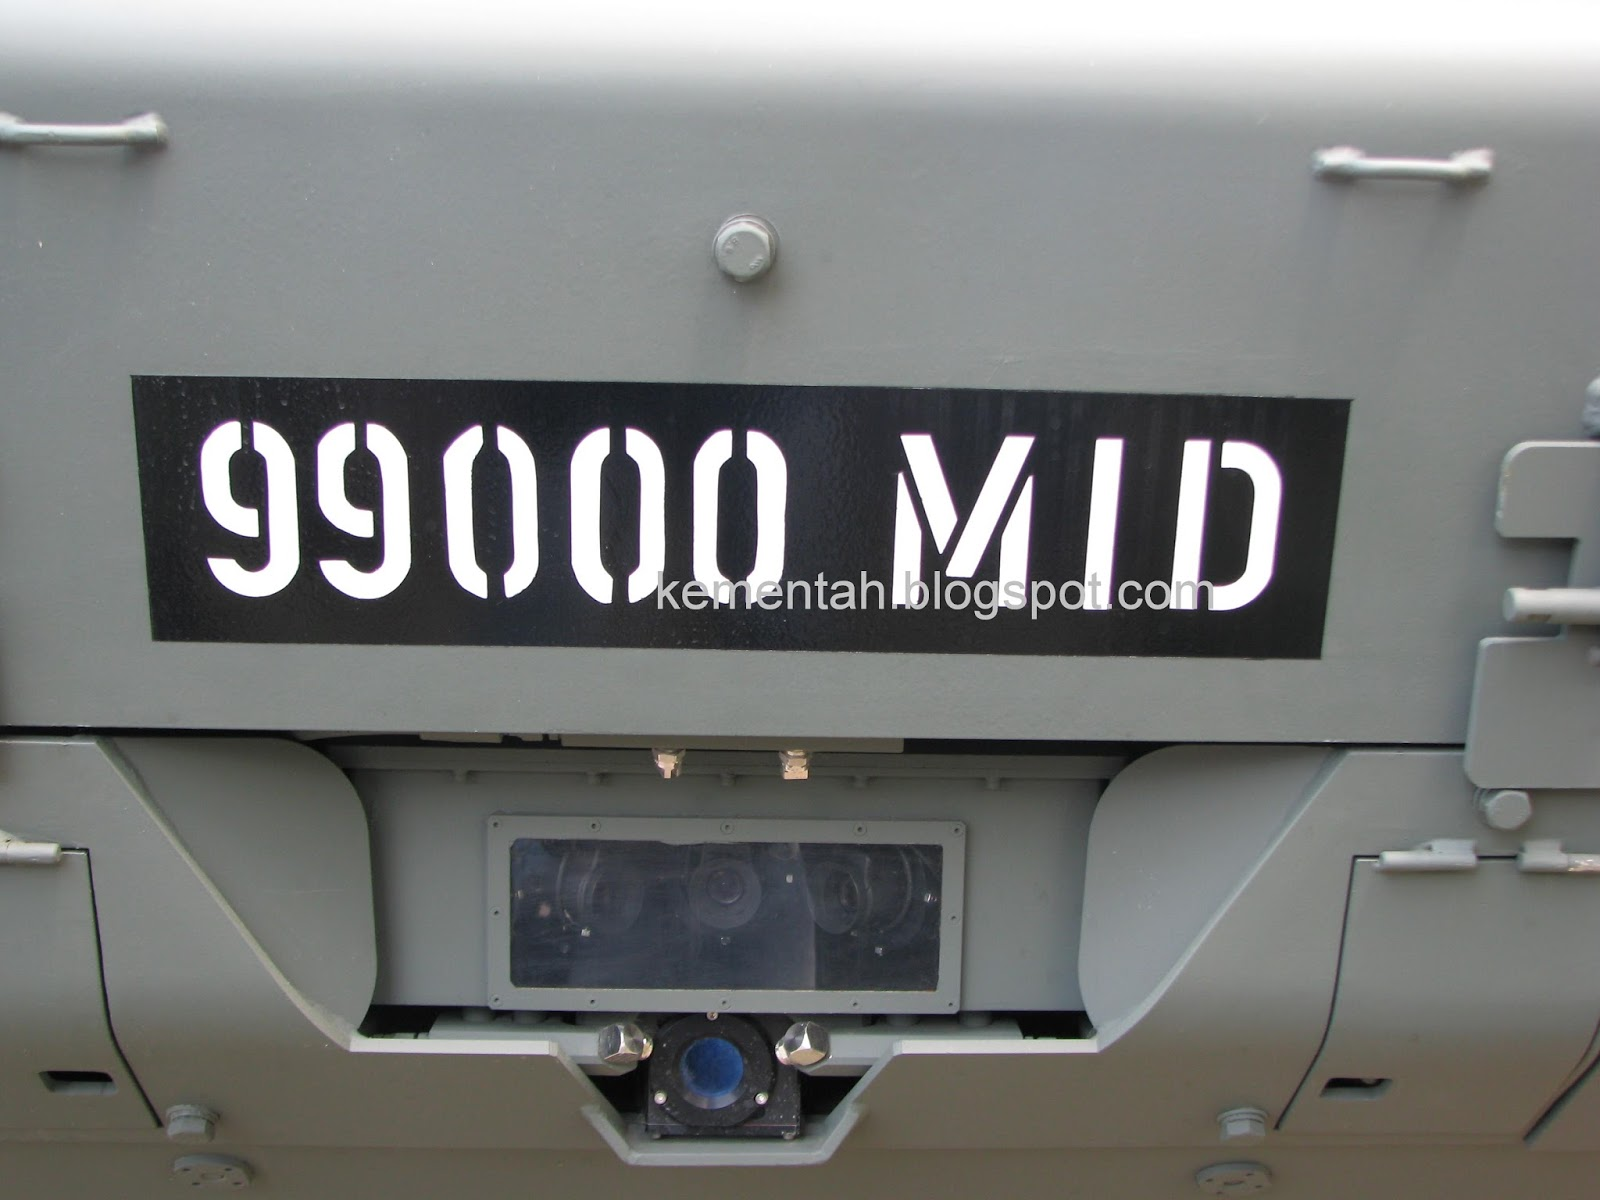 Car colour number plate - The Vehicle Type With The Highest Number Plate Series Is The Terrex These Have Been Observed With Plates Starting From 99000 Mid